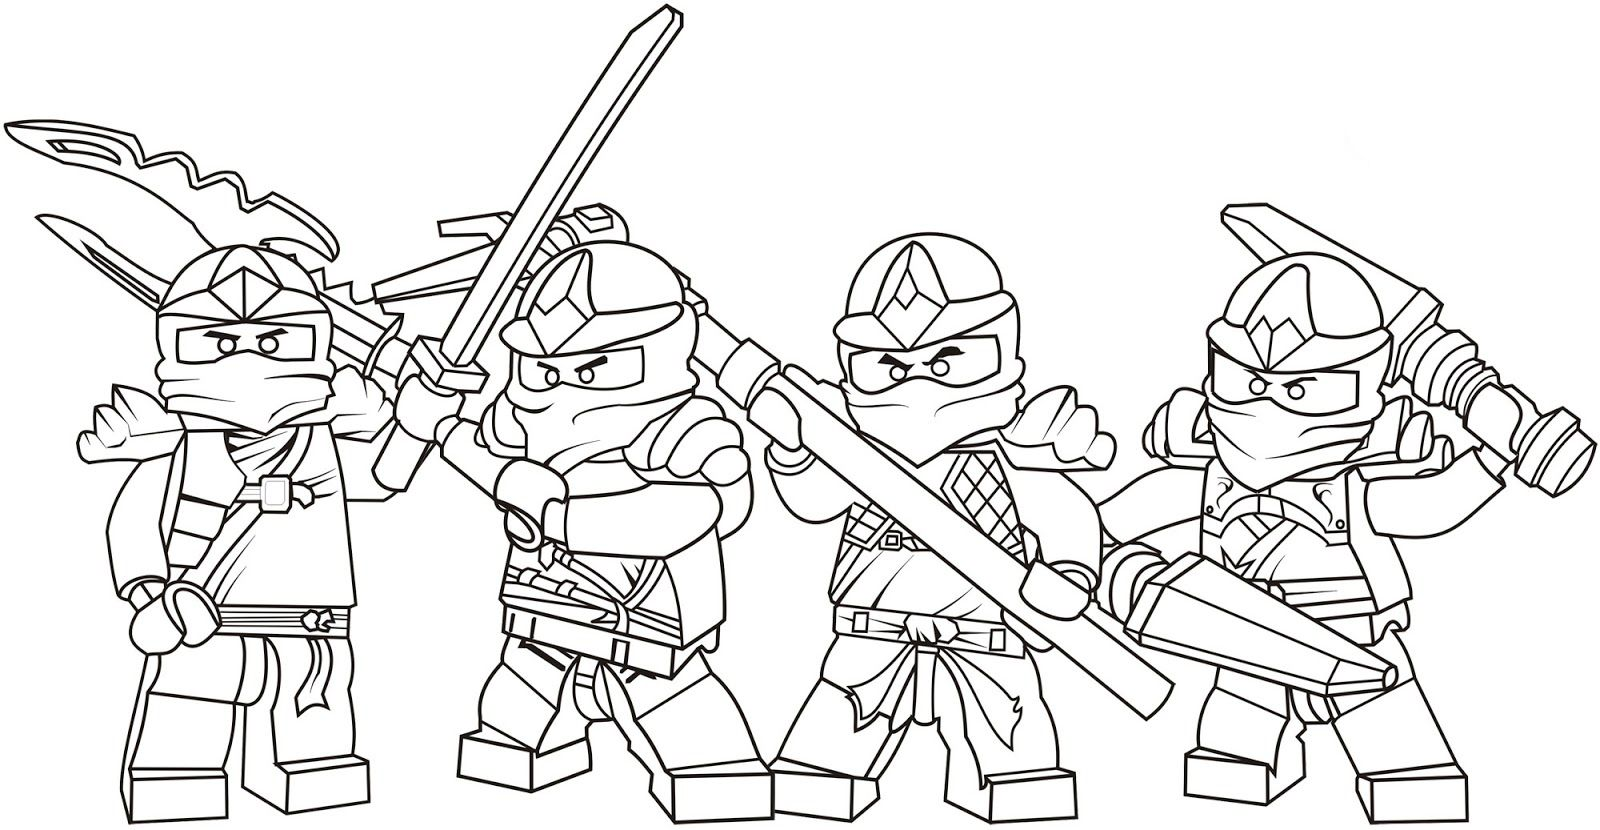 Lego Chima Coloring Page Free Pages Download